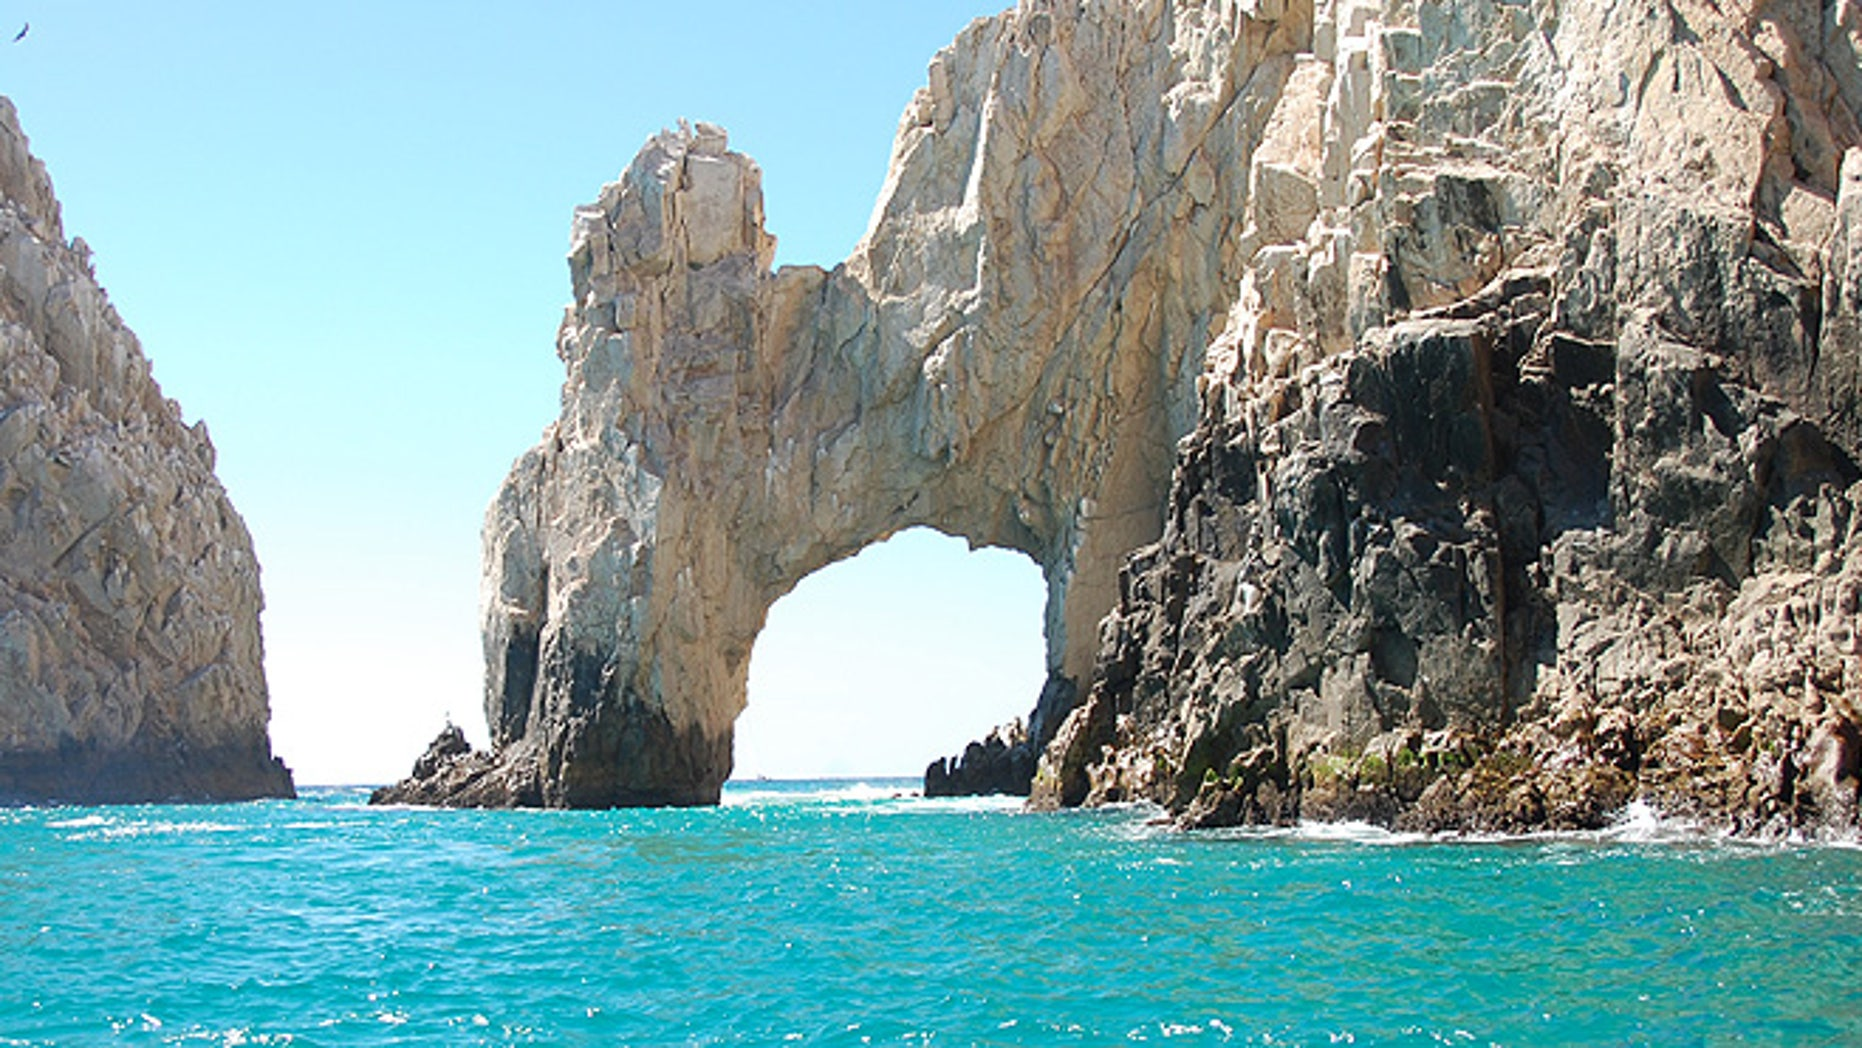 A total of 61 U.S. citizens have drowned in Mexico from January 2010 through June 2012, according to State Department statistics. Of those fatalities, 3 occurred in Cabo San Lucas, seen above. (FoxNews.com)